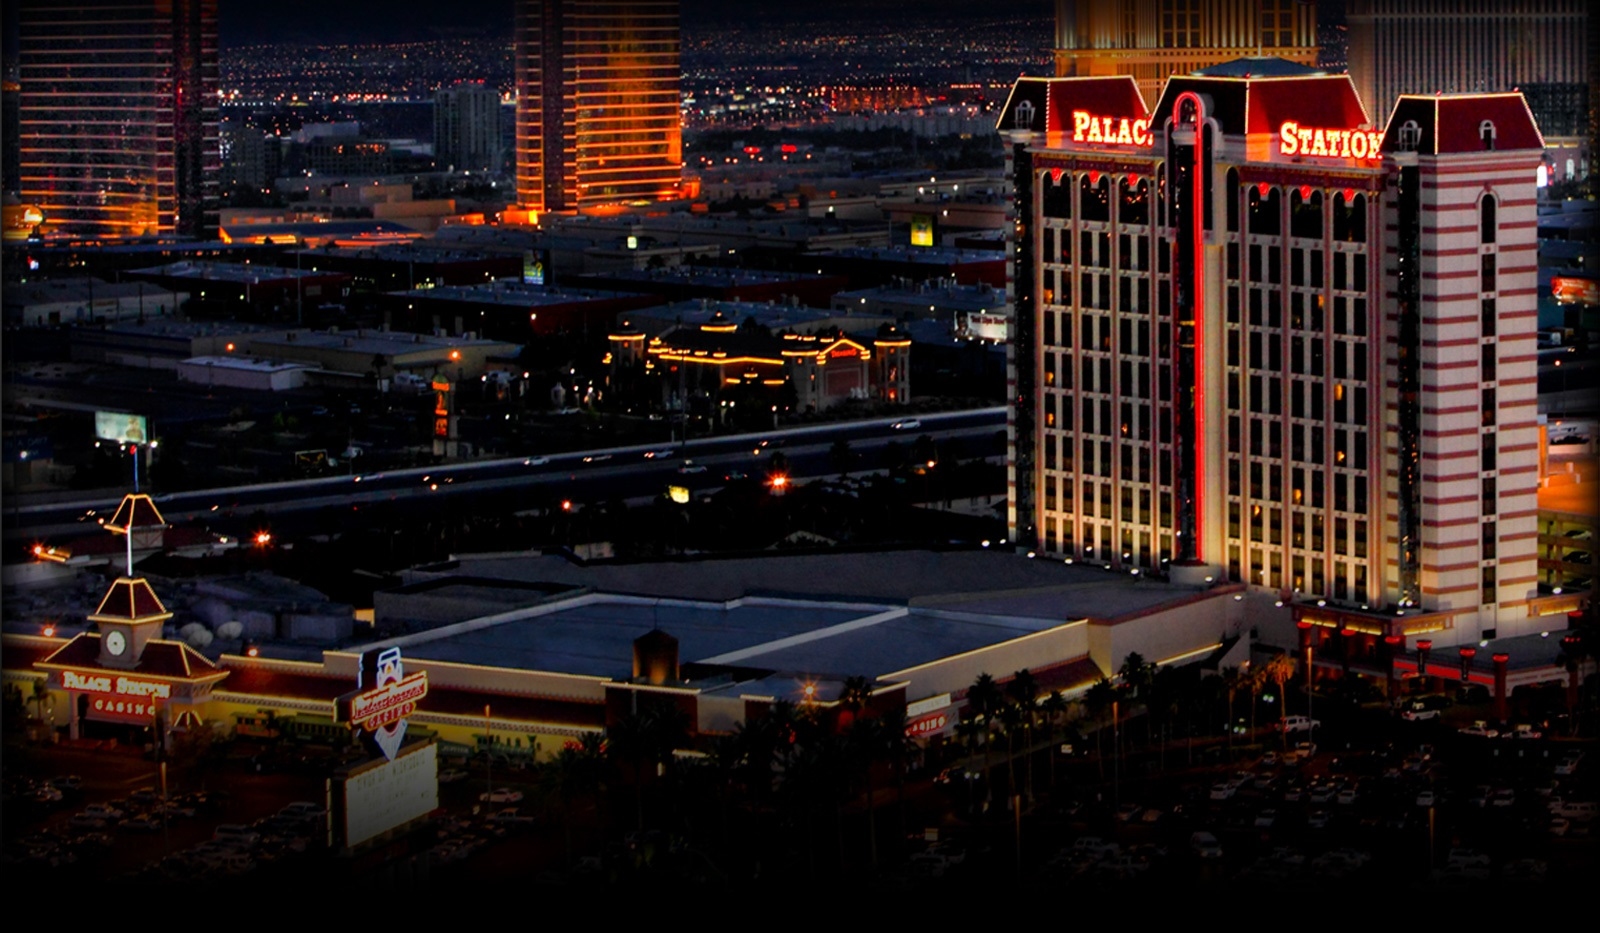 Get in the Game with Sports Connection Mobile from Station Casinos